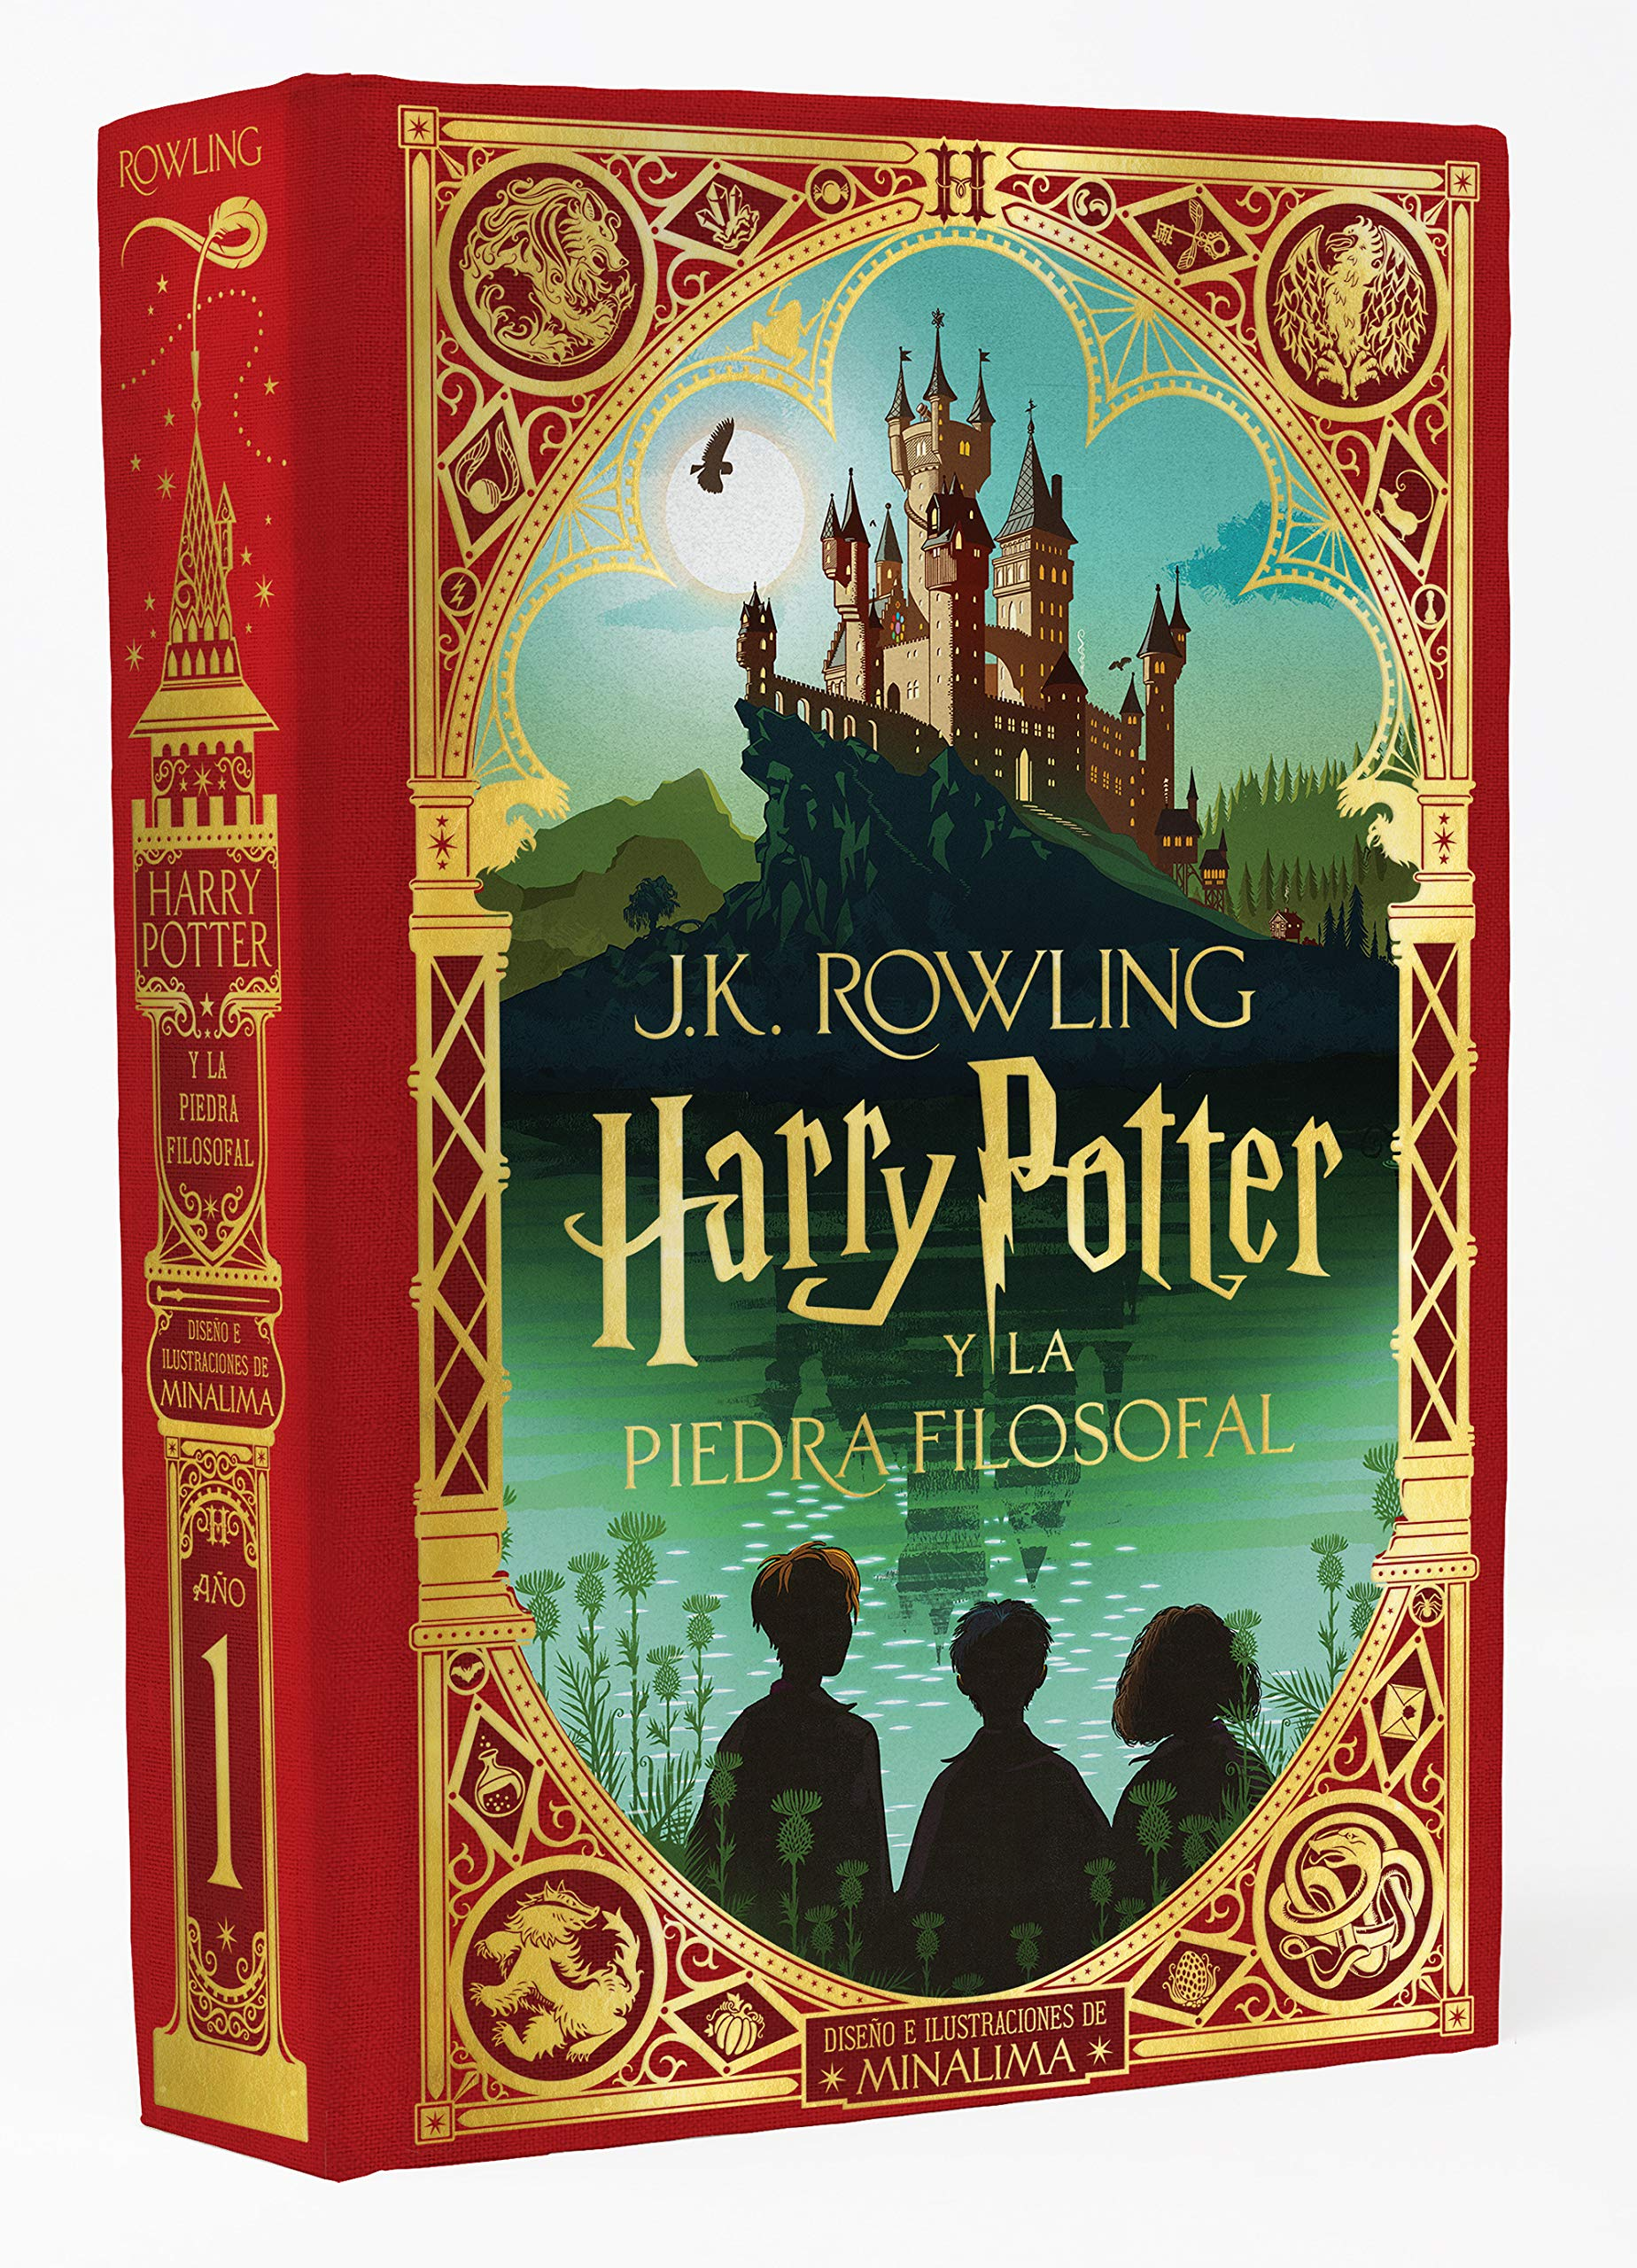 Harry Potter Y La Piedra Filosofal Ed Minalima Harry Potter And The Sorcerer S Stone Minalima Edition Spanish Edition 9788418174070 Rowling J K Books